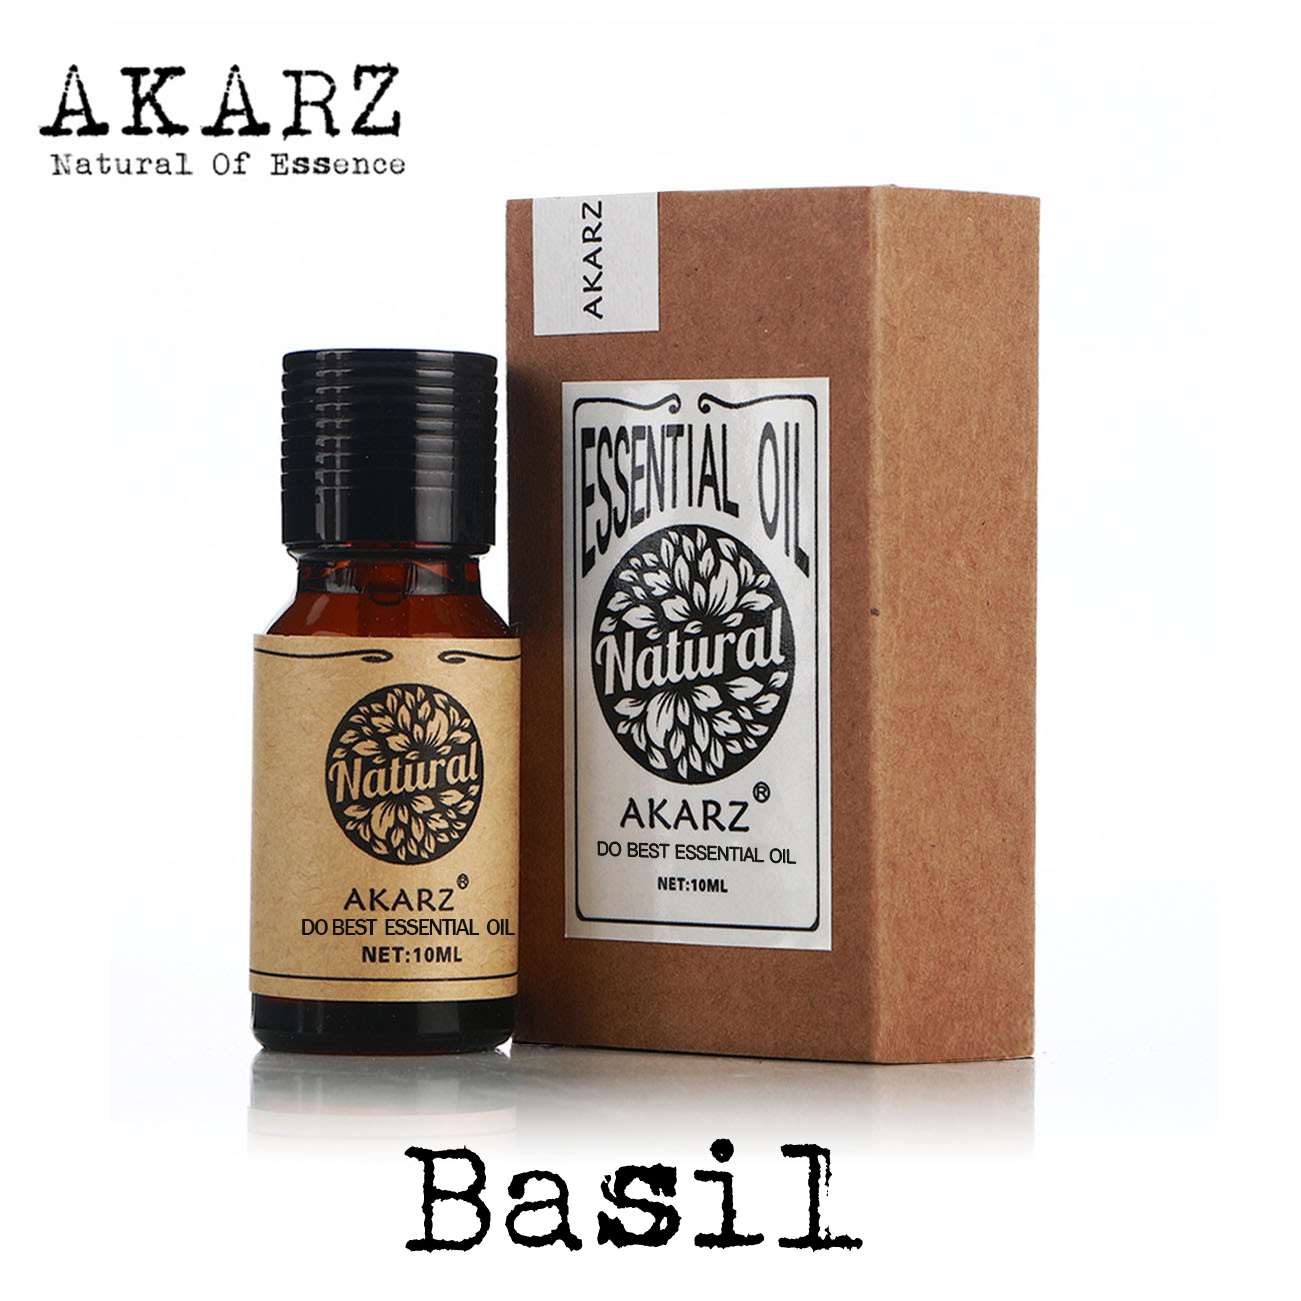 AKARZ Famous brand natural aromatherapy basil oil Improve spirit Stabilization effect Firming Oil balance basil essential oil